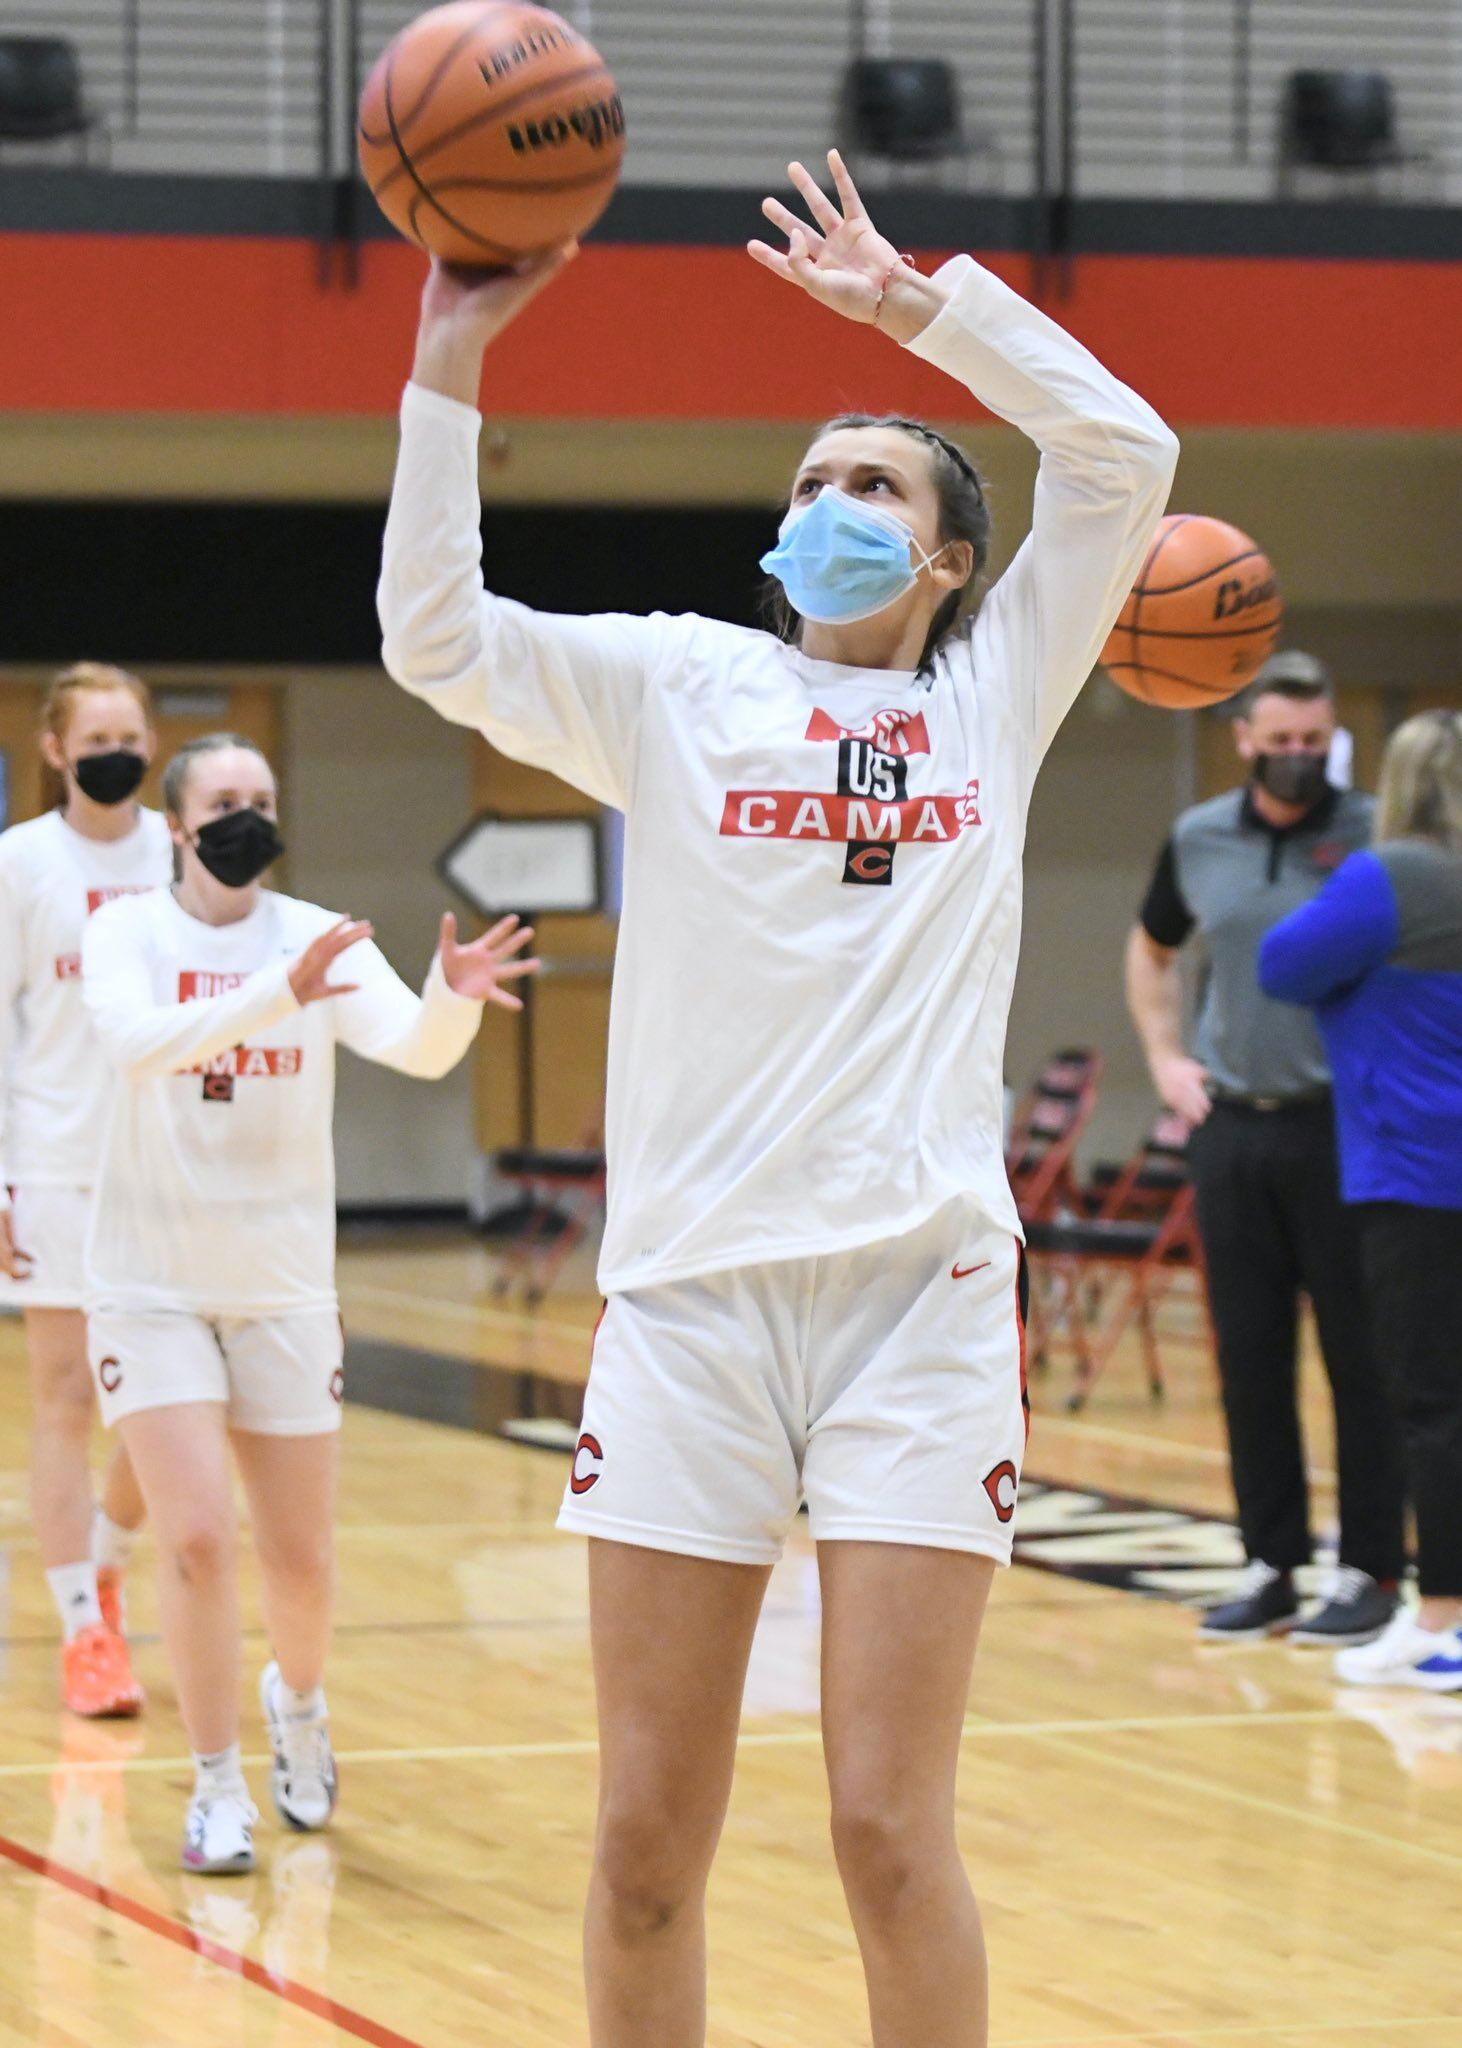 Reagan Jamison is one of five freshmen on the Camas girls varsity basketball team.  Paper makers are winning now and also have an eye on the future.  Photo courtesy Kris Cavin